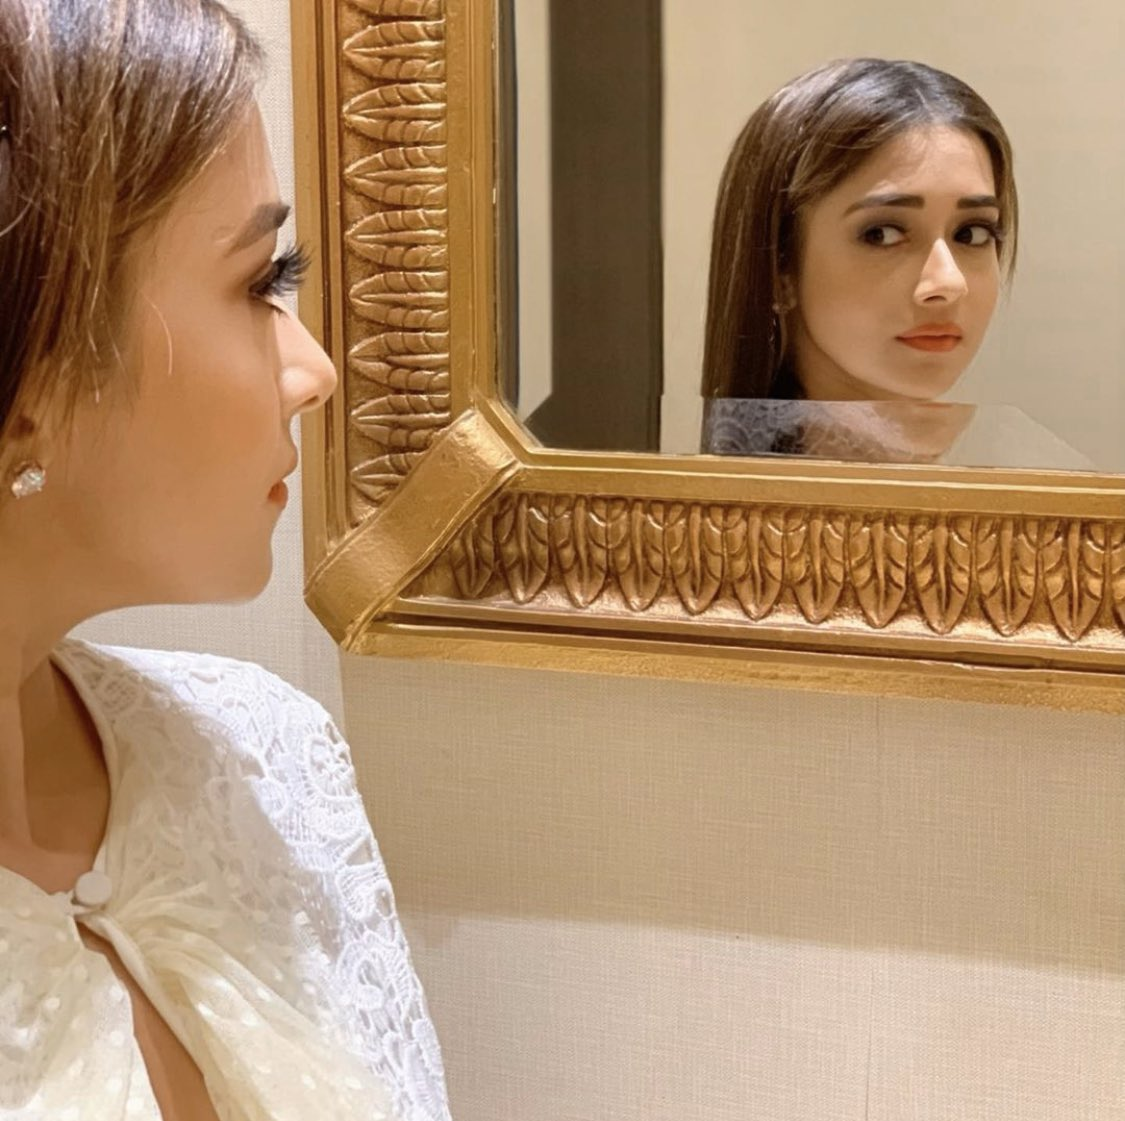 It's not about your reflection, it's what u see beyond it  #happysunday #sunday #dattaatinaa pic.twitter.com/UJtAQTlI5b